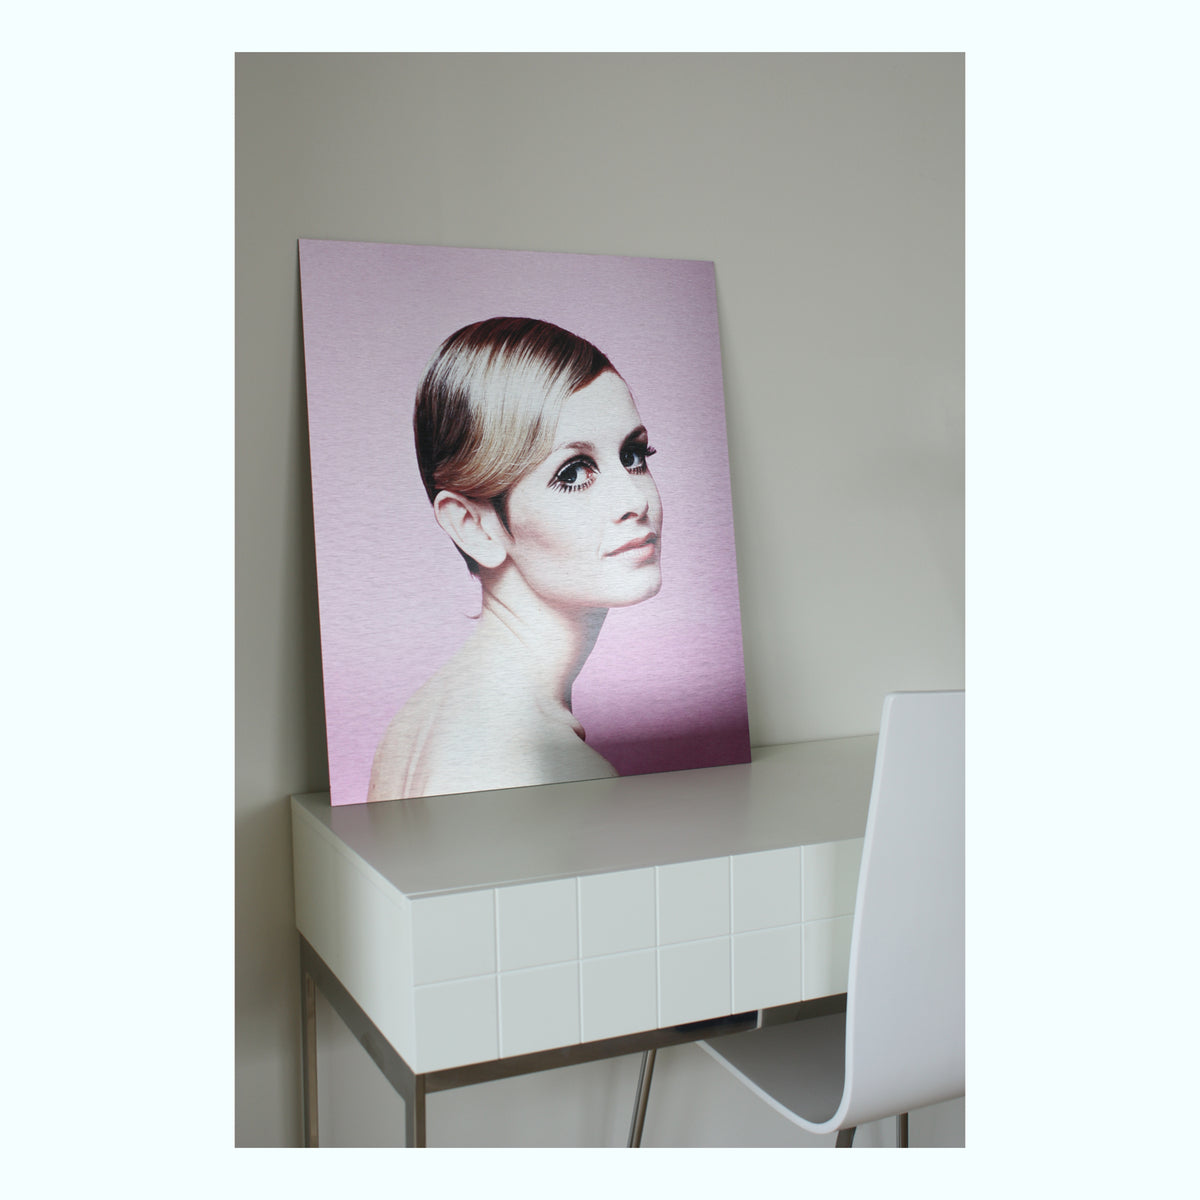 Wallpapers & Framed Artworks, Portobello Lofts, Property Development